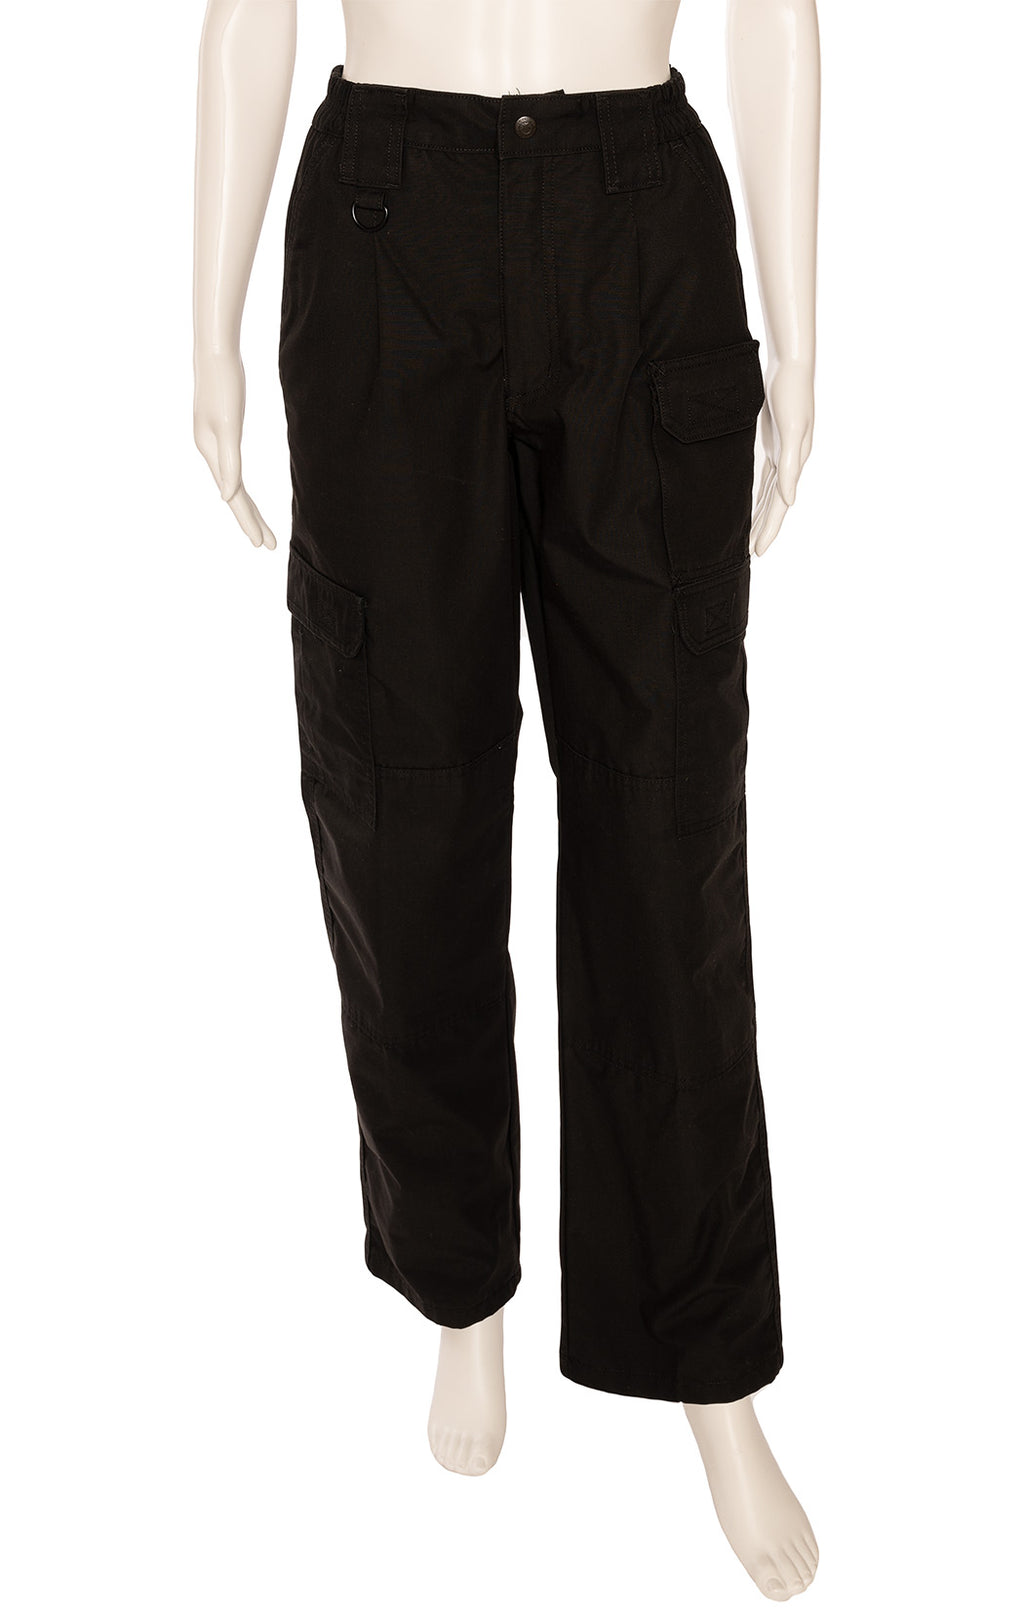 Black cargo pant with full leg and  elastic waist